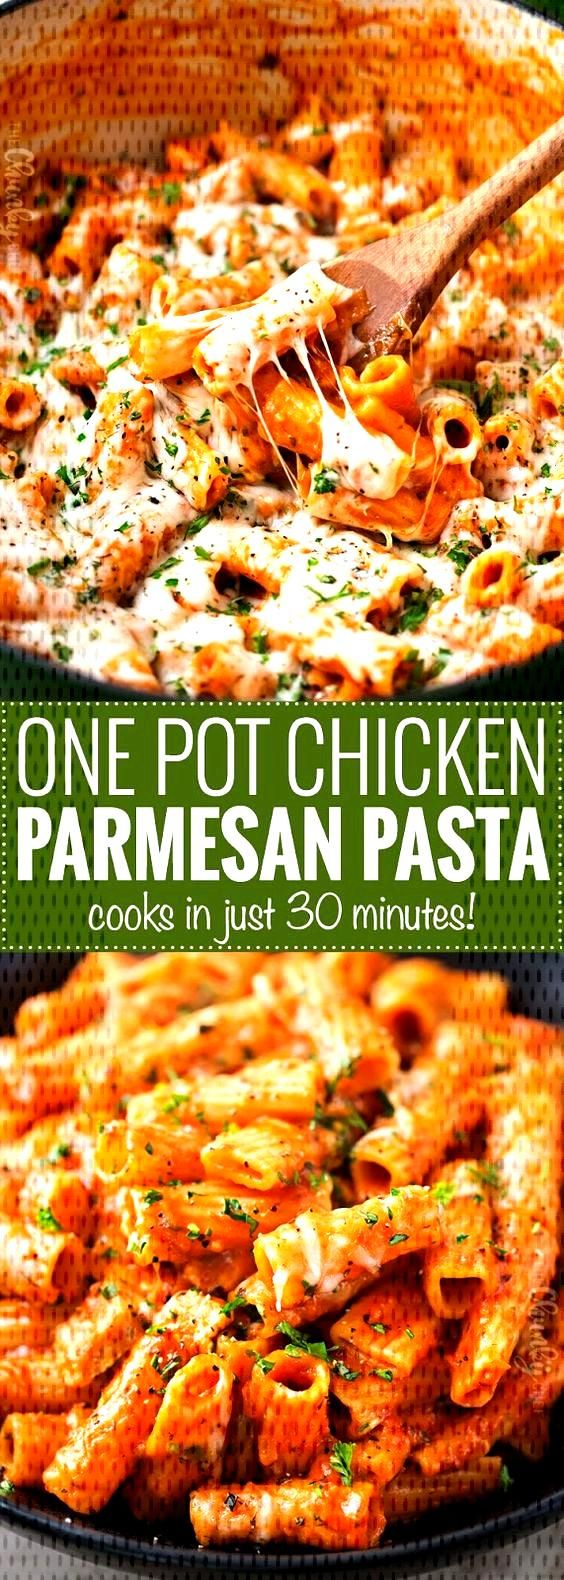 All the great chicken parmesan flavors, combined in one easy one pot pasta dish that's ready in 30